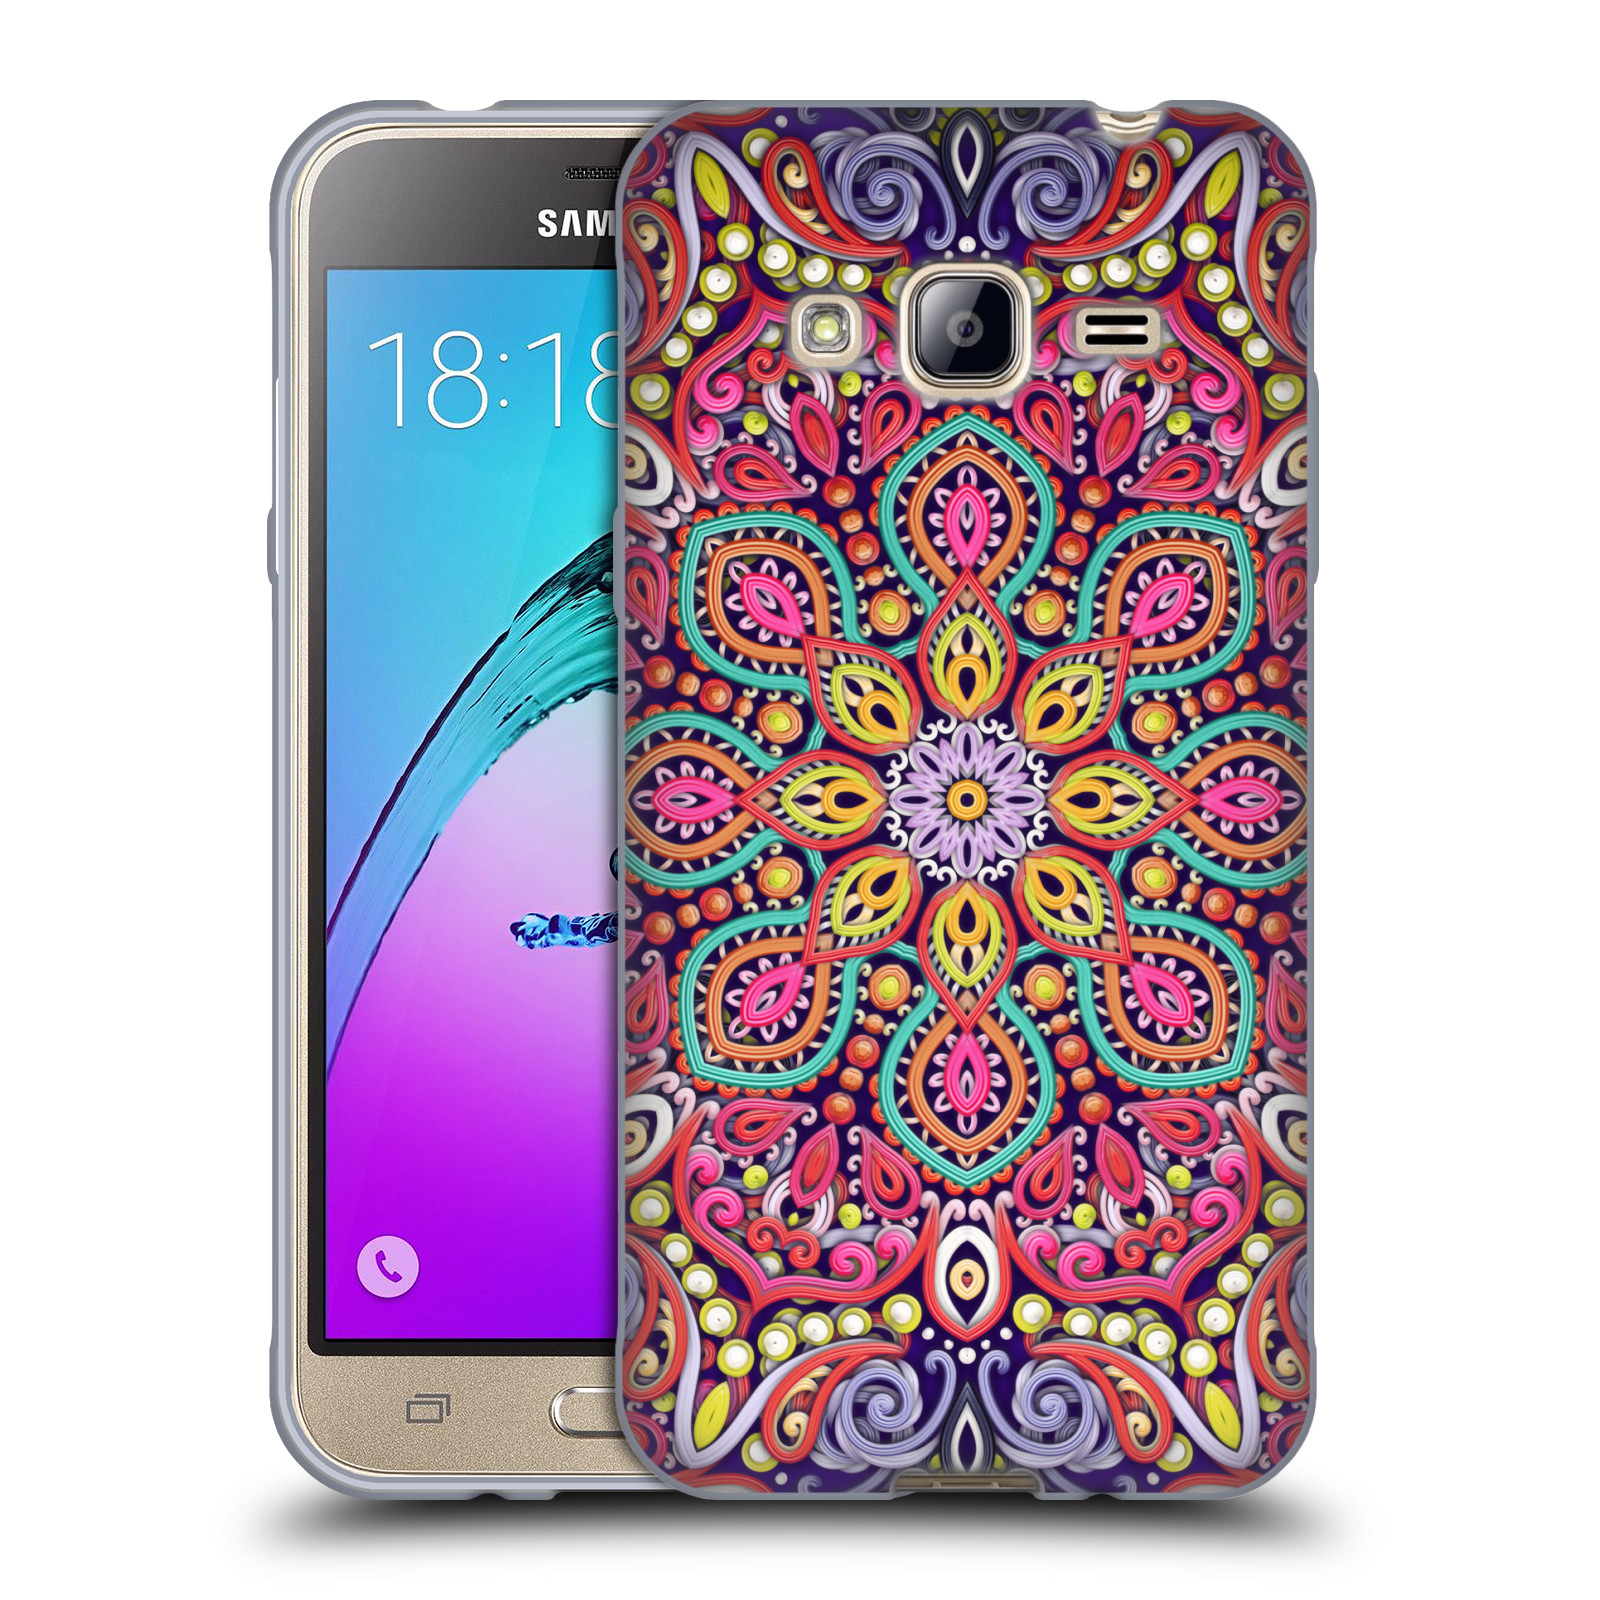 GIULIO-ROSSI-COLLECTION-MANDALA-ETUI-COQUE-EN-GEL-POUR-SAMSUNG-TELEPHONES-3